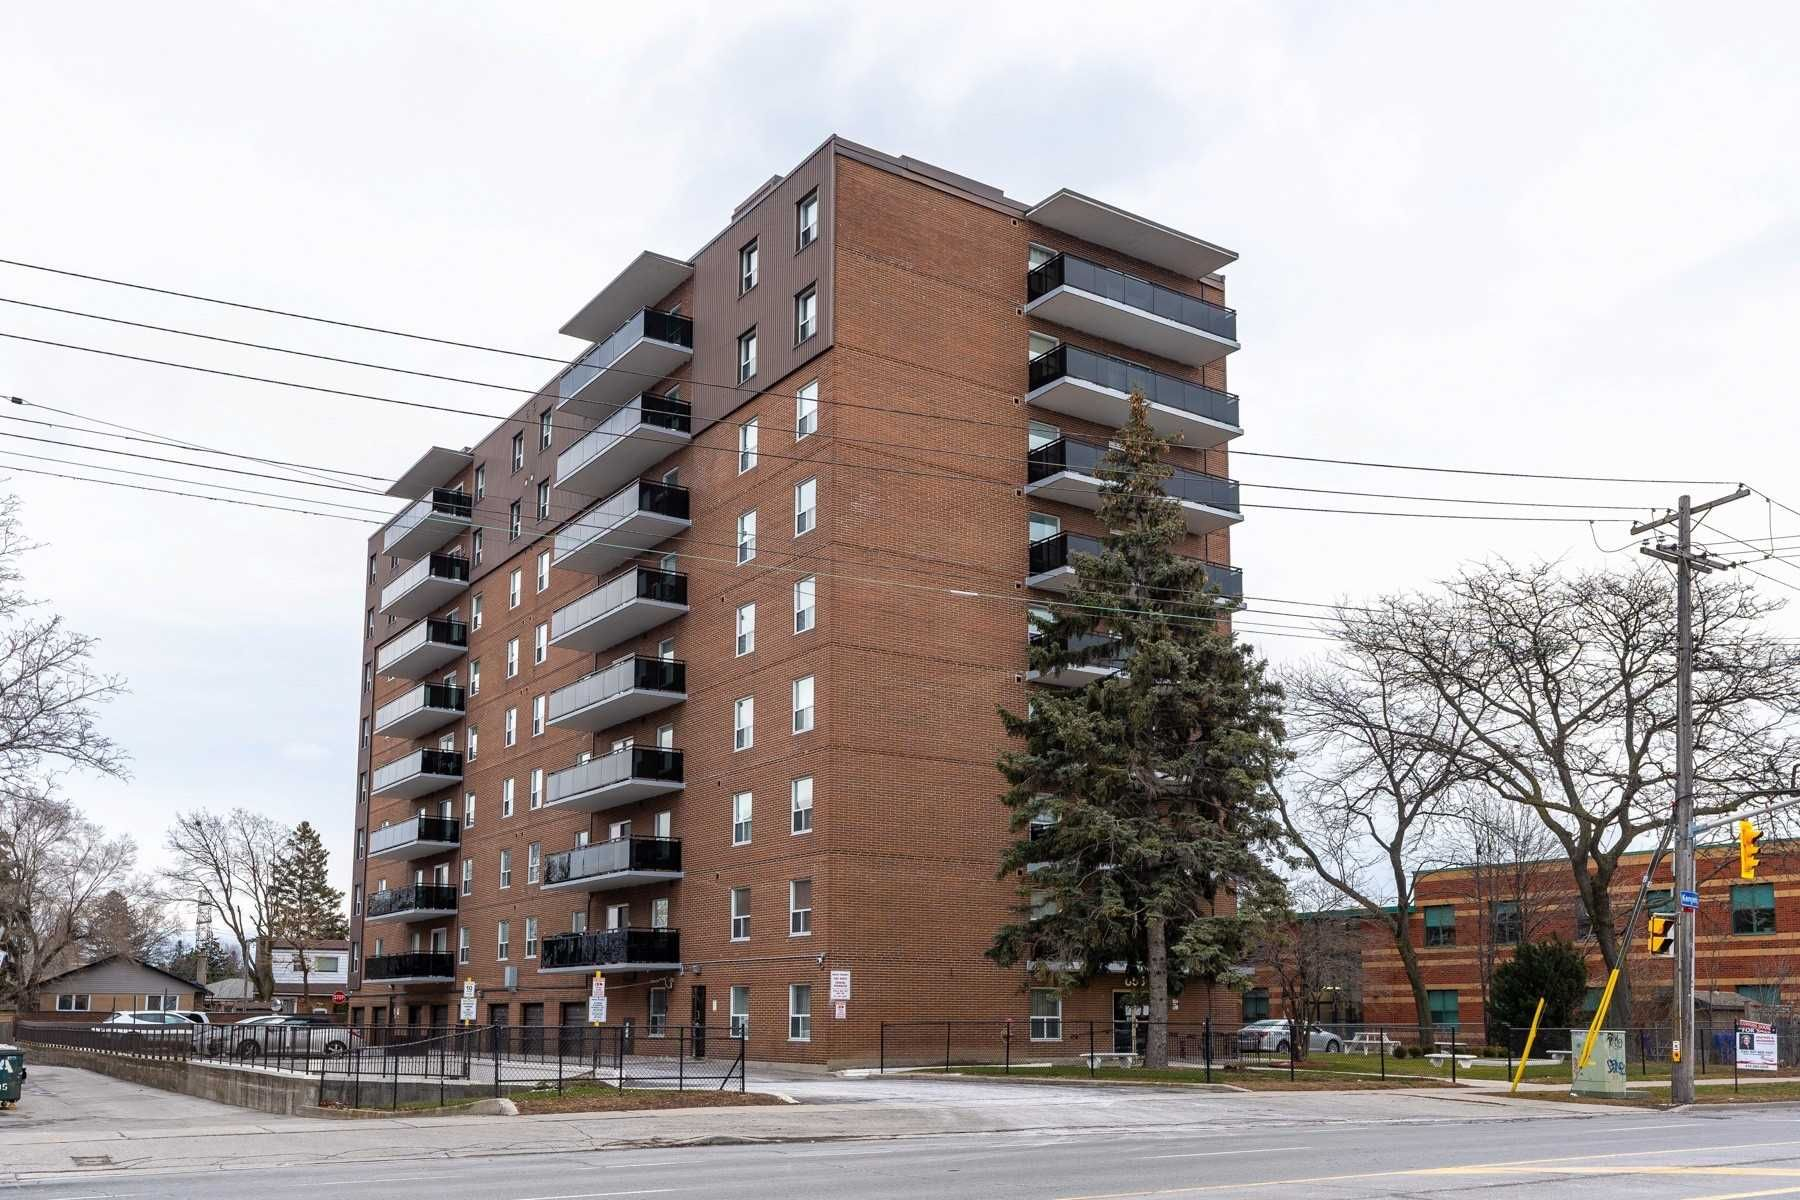 Main Photo: 705 855 Kennedy Road in Toronto: Ionview Condo for sale (Toronto E04)  : MLS®# E5089298